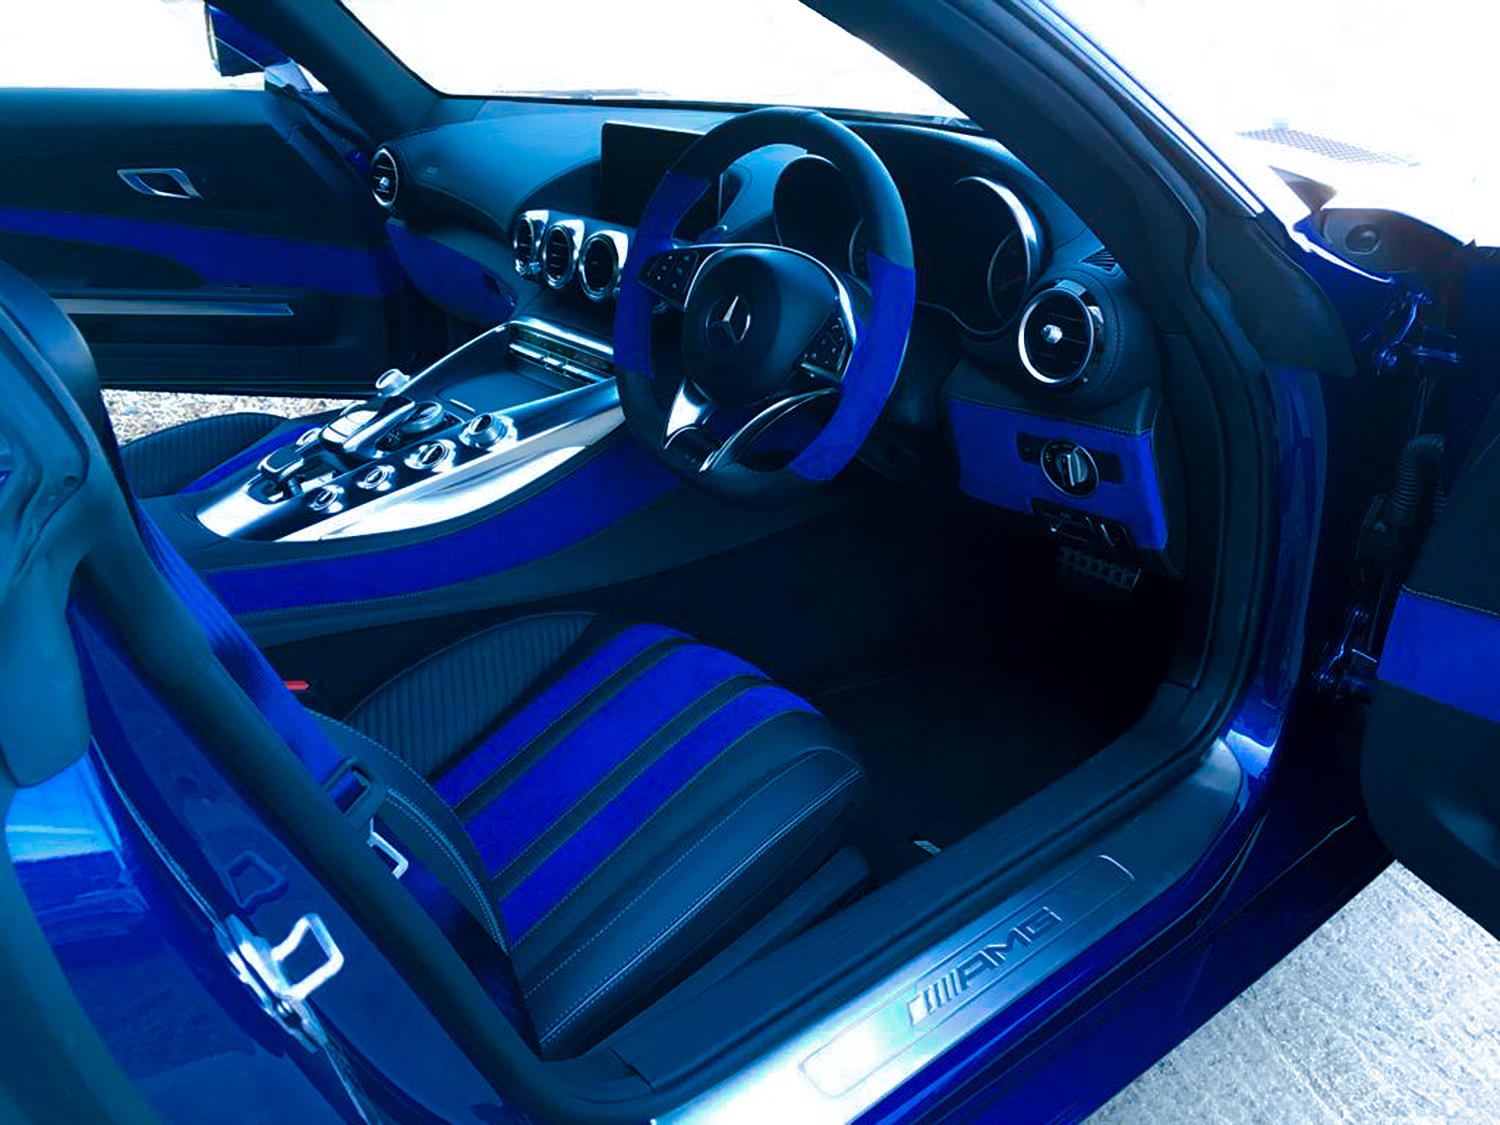 INTERIOR_BLUE-AMG_01_fl.jpg